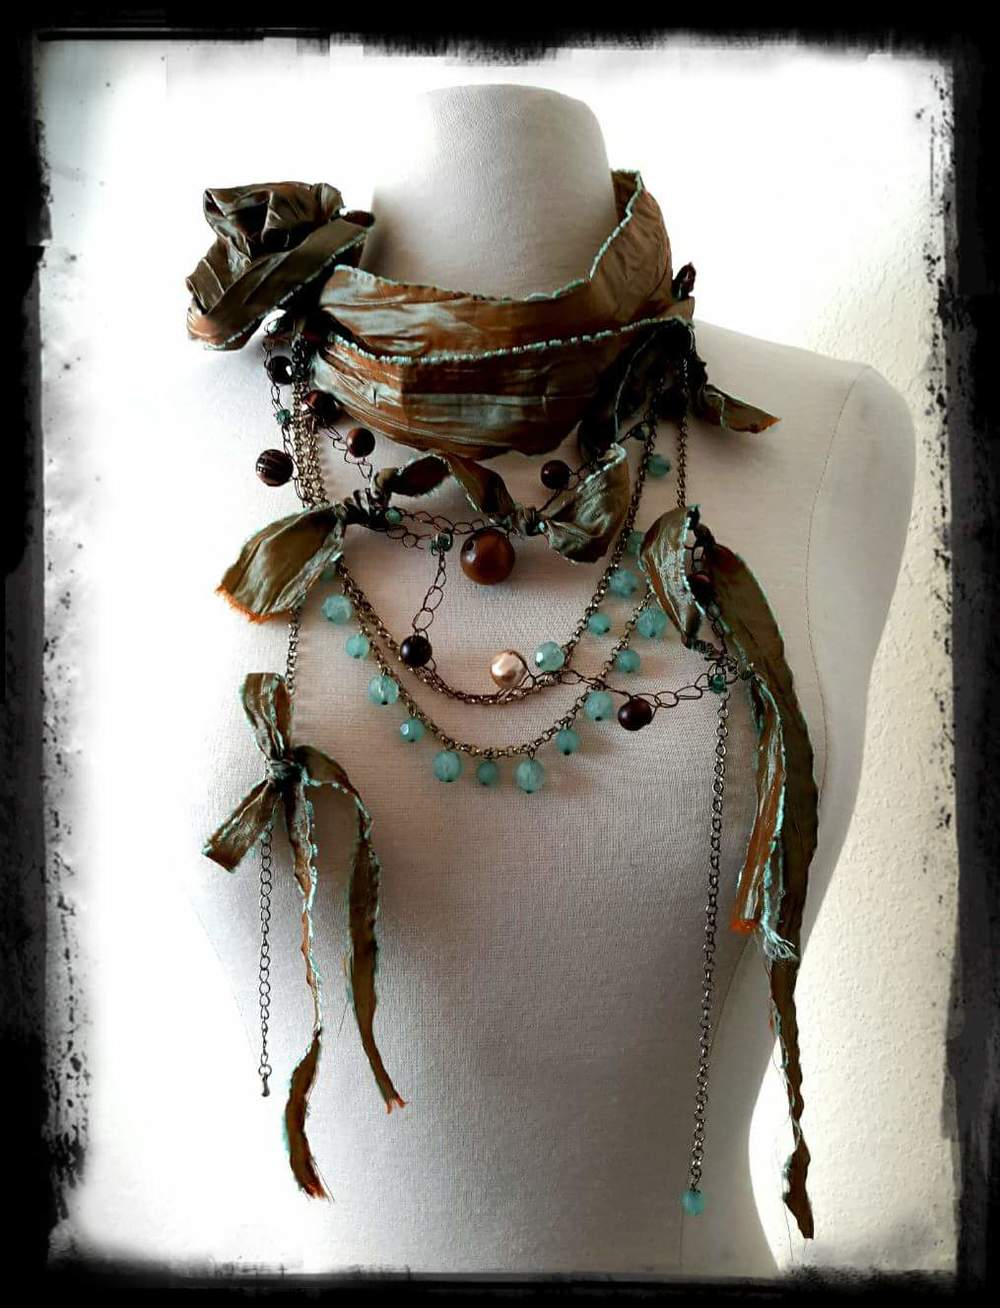 Handmade vintage necklace